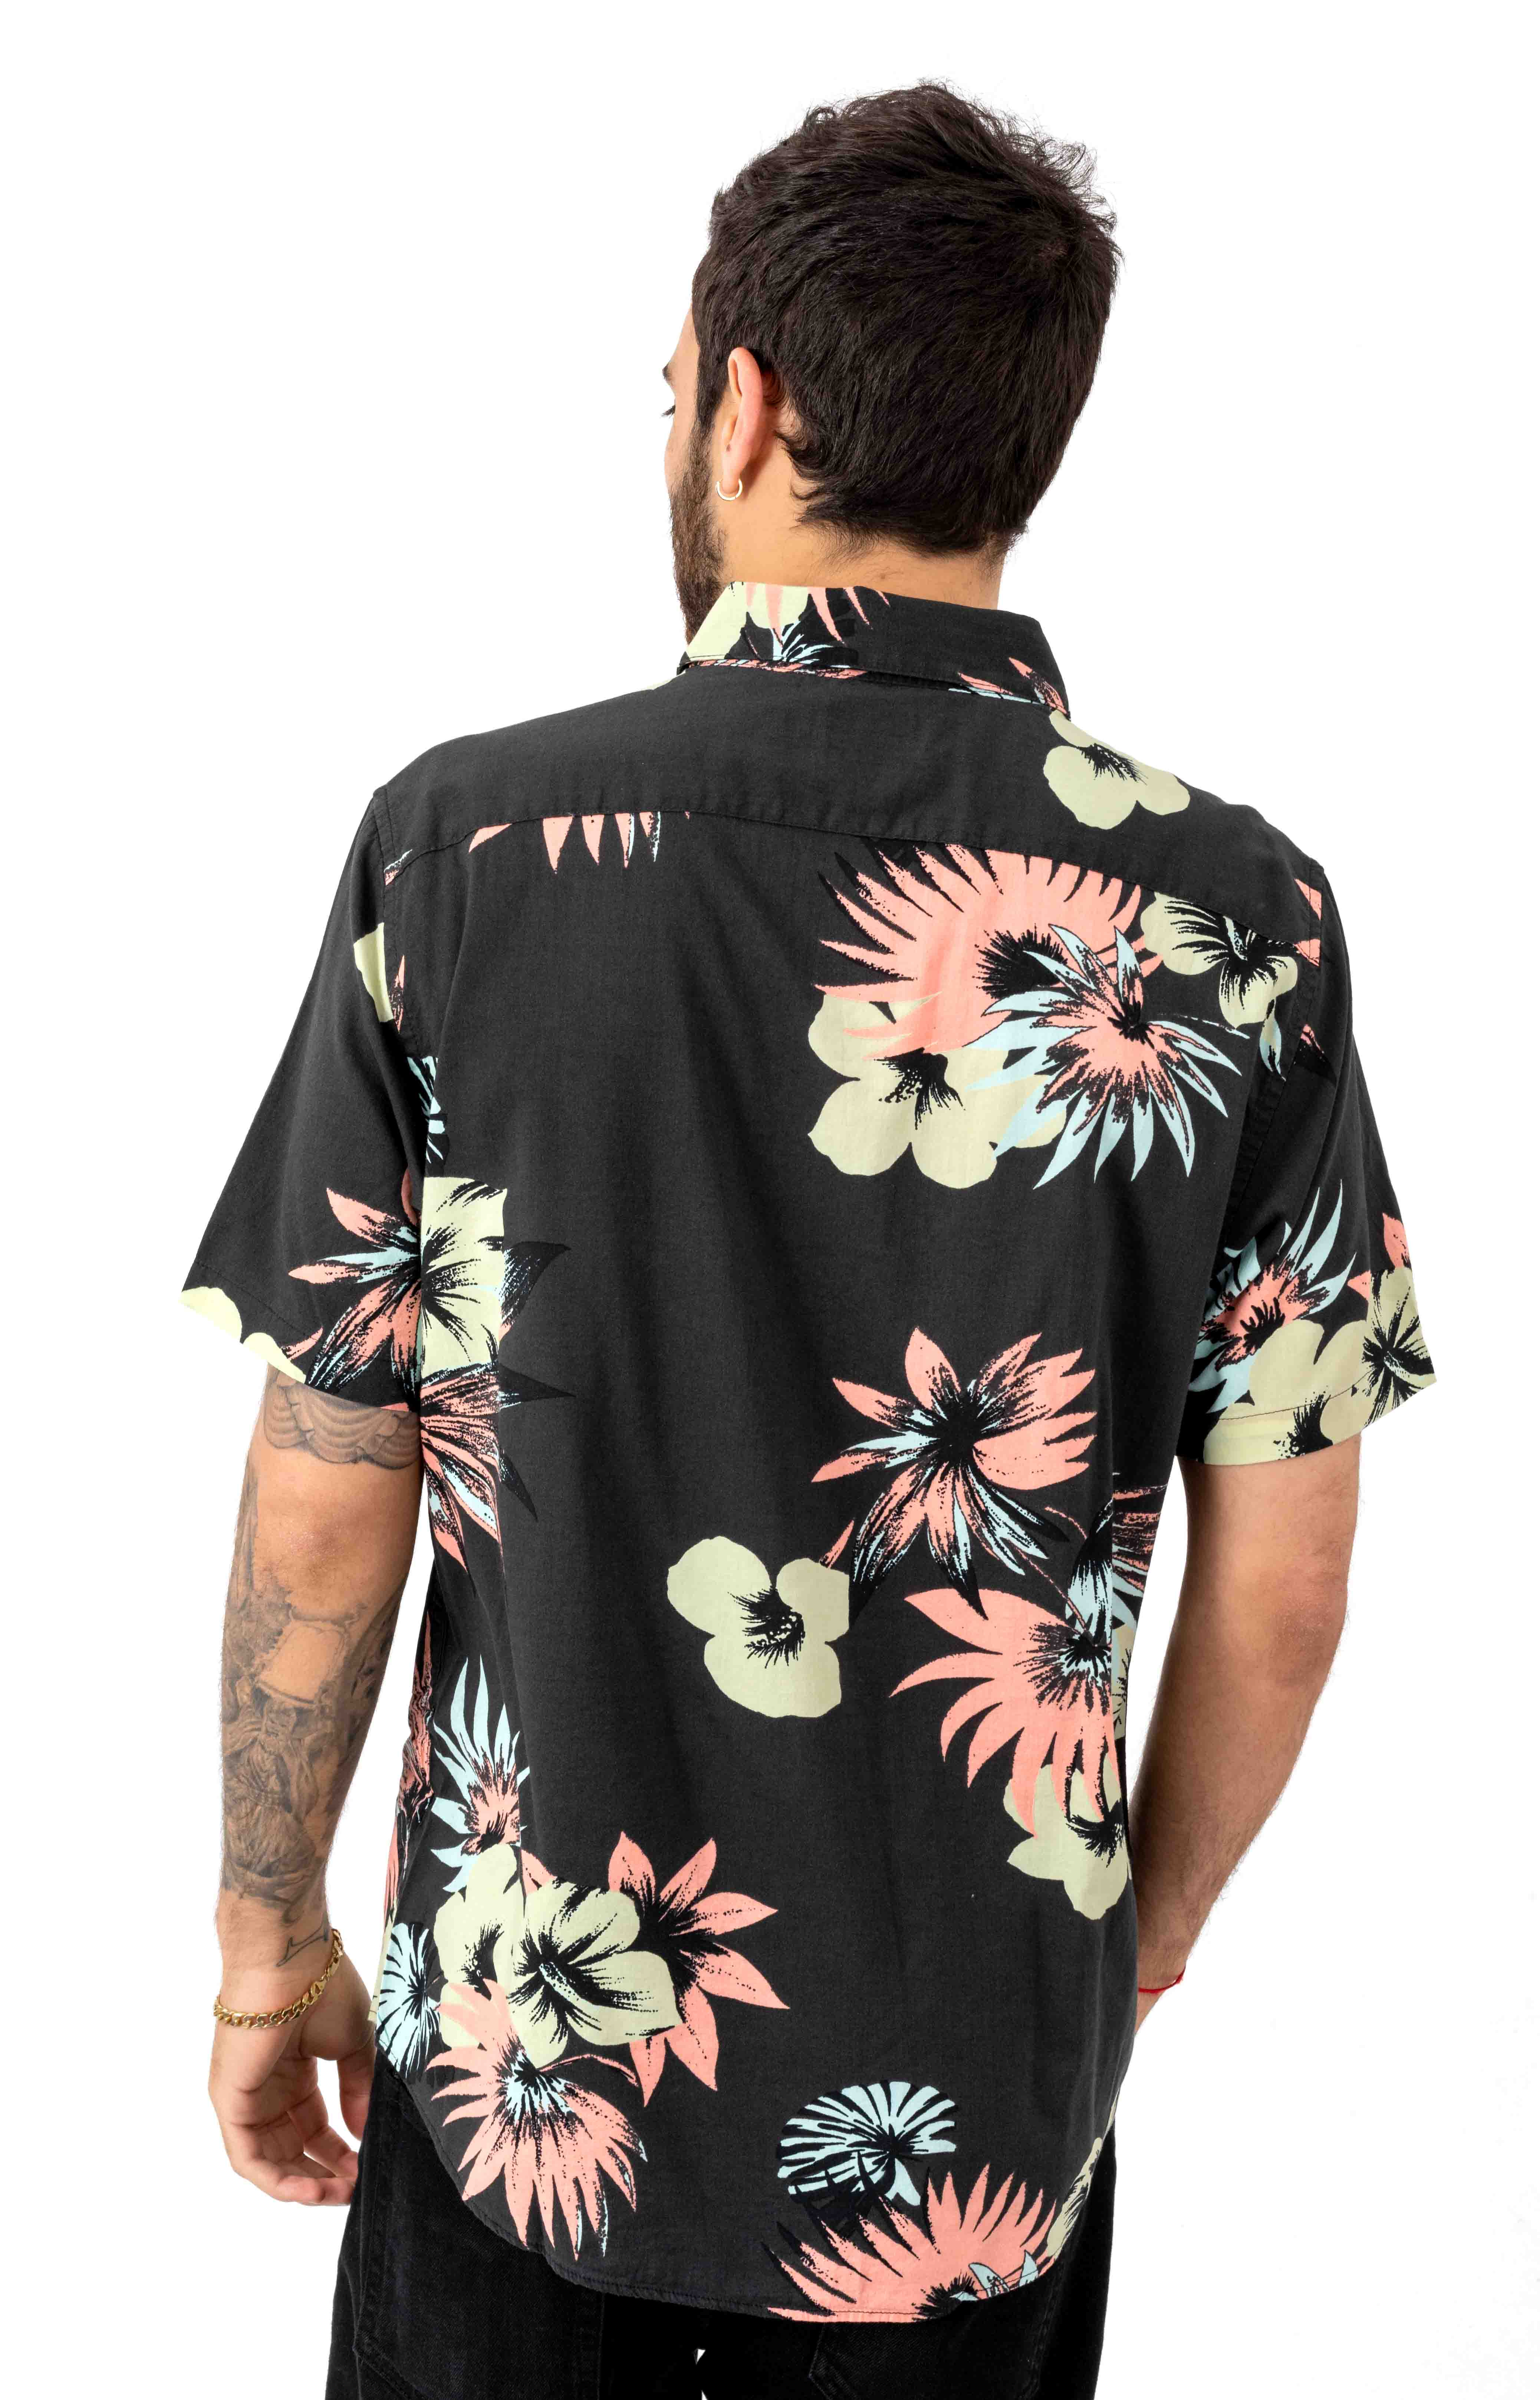 Romeo Floral Button-Up Shirt - Pirate Black  3